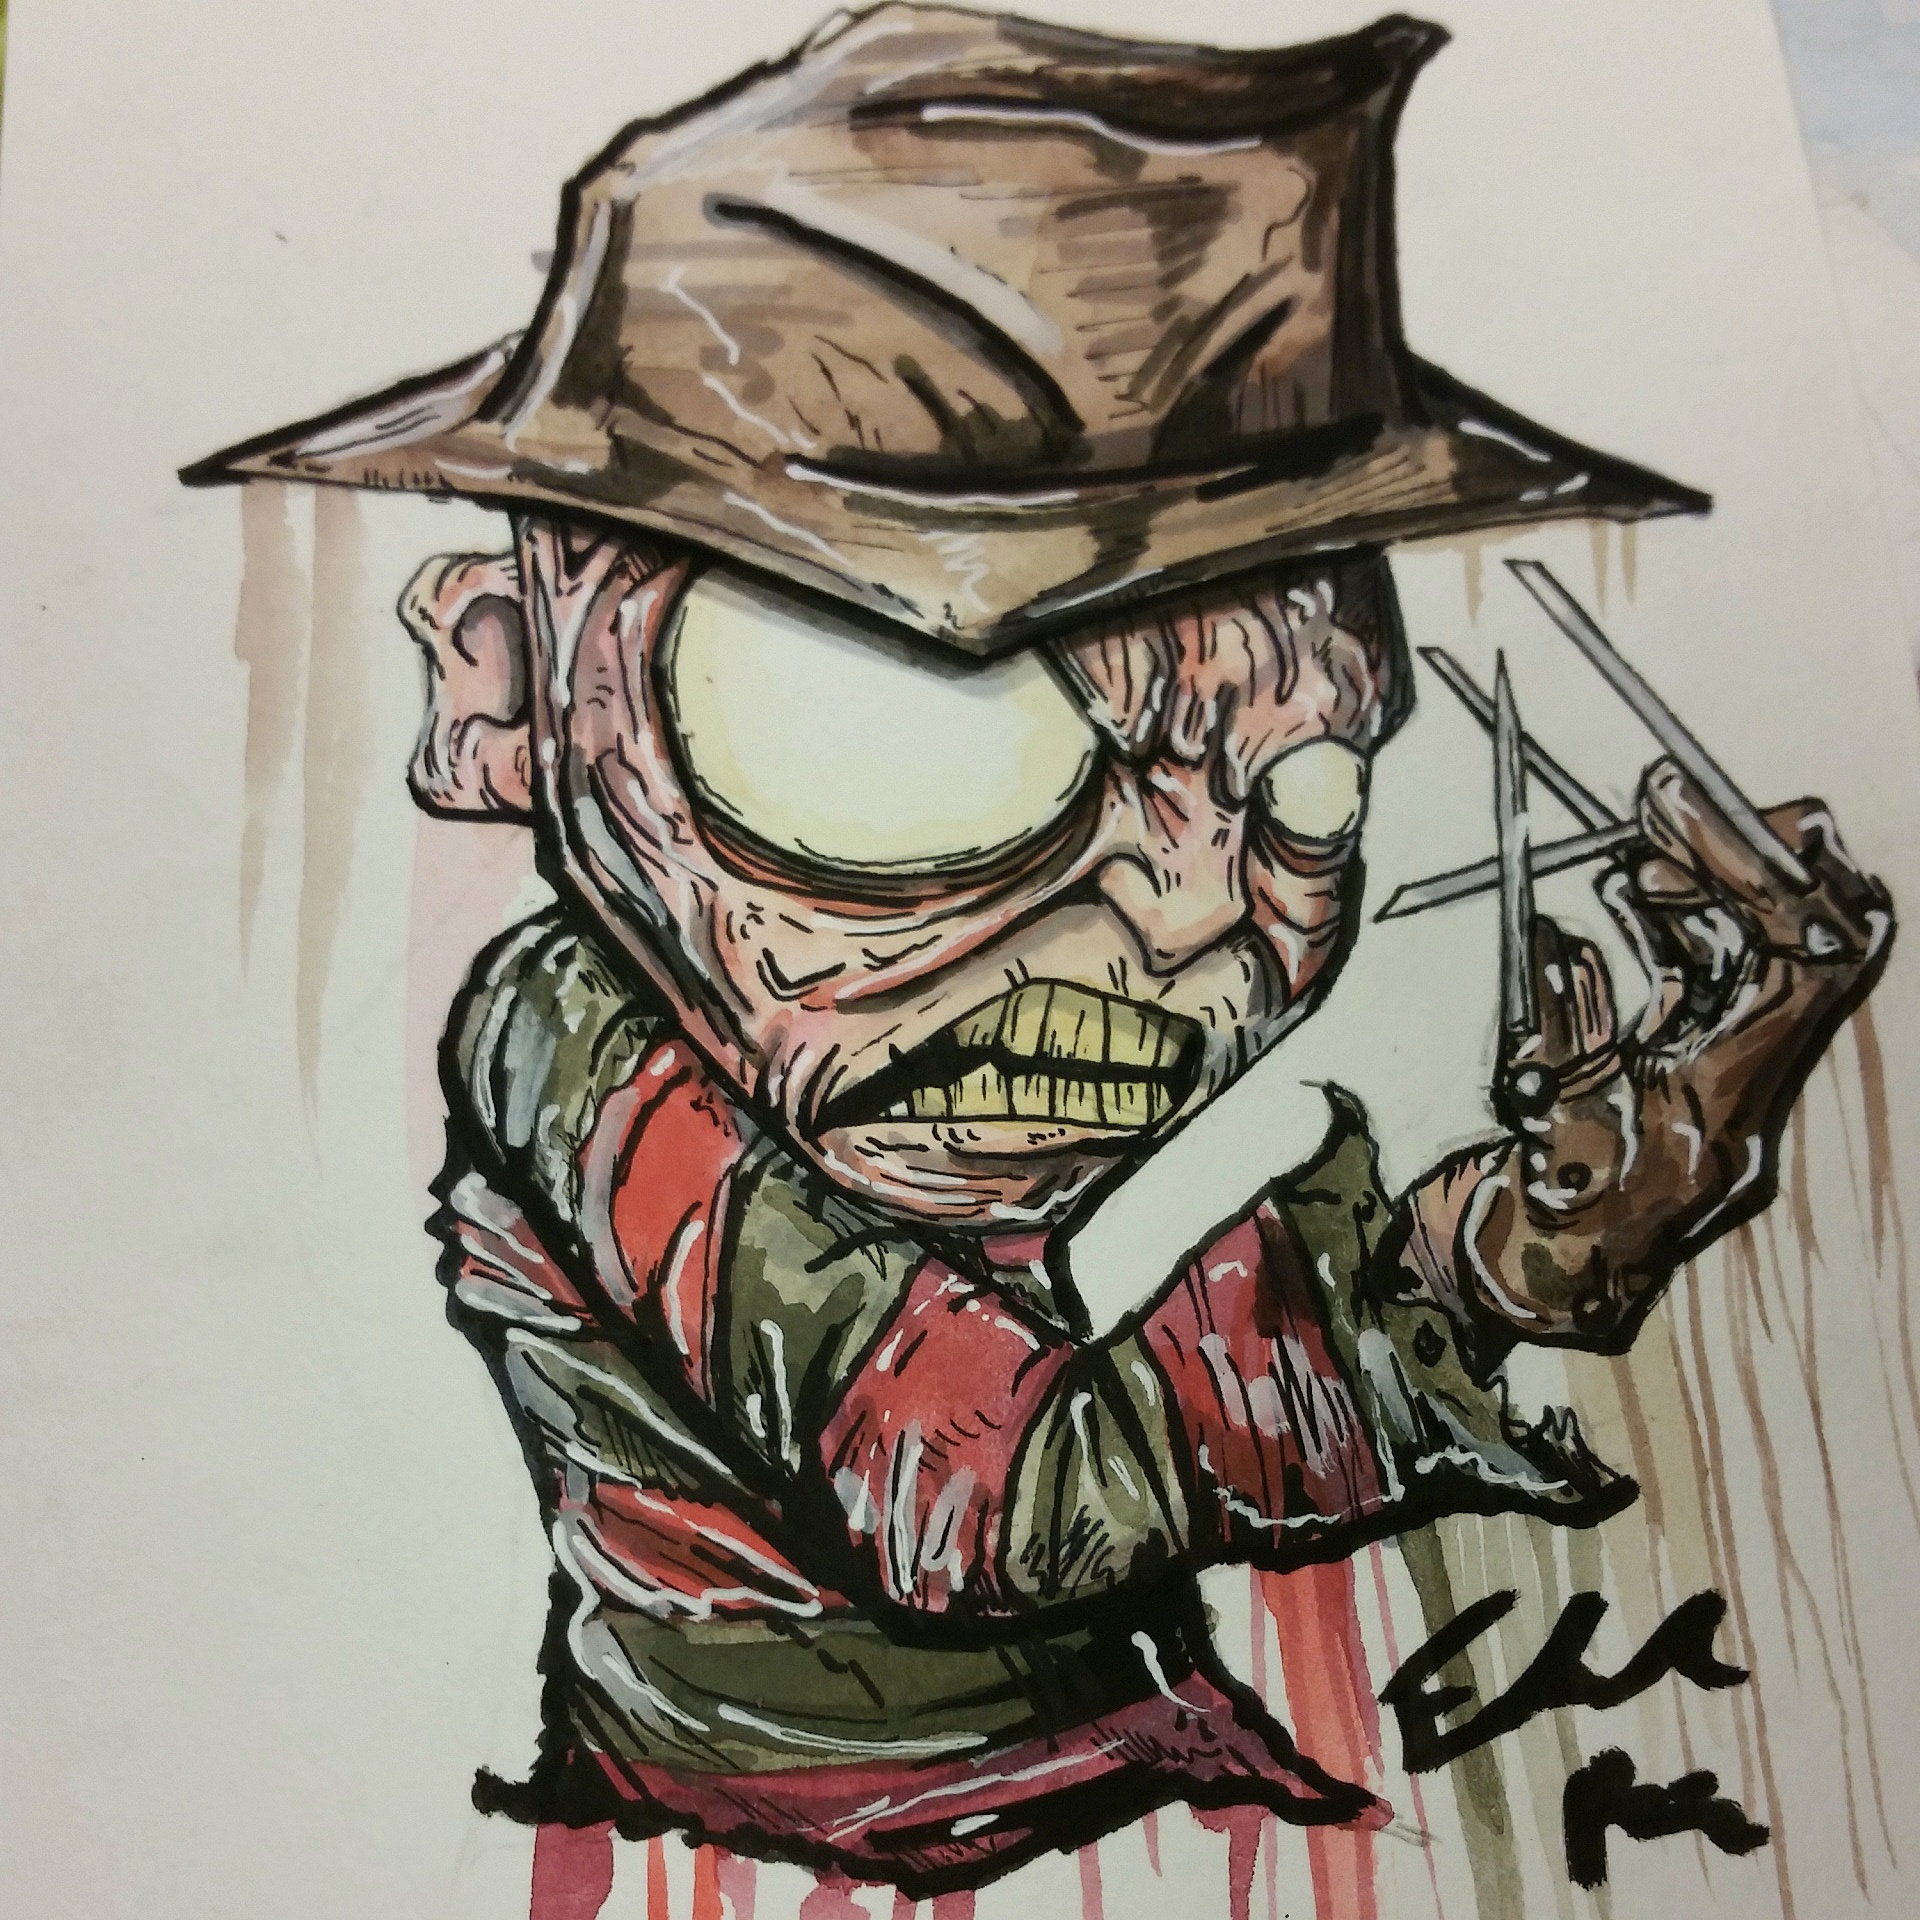 a2aa8d1a438 Freddy Kruger print · Taco Boy Designs · Online Store Powered by ...